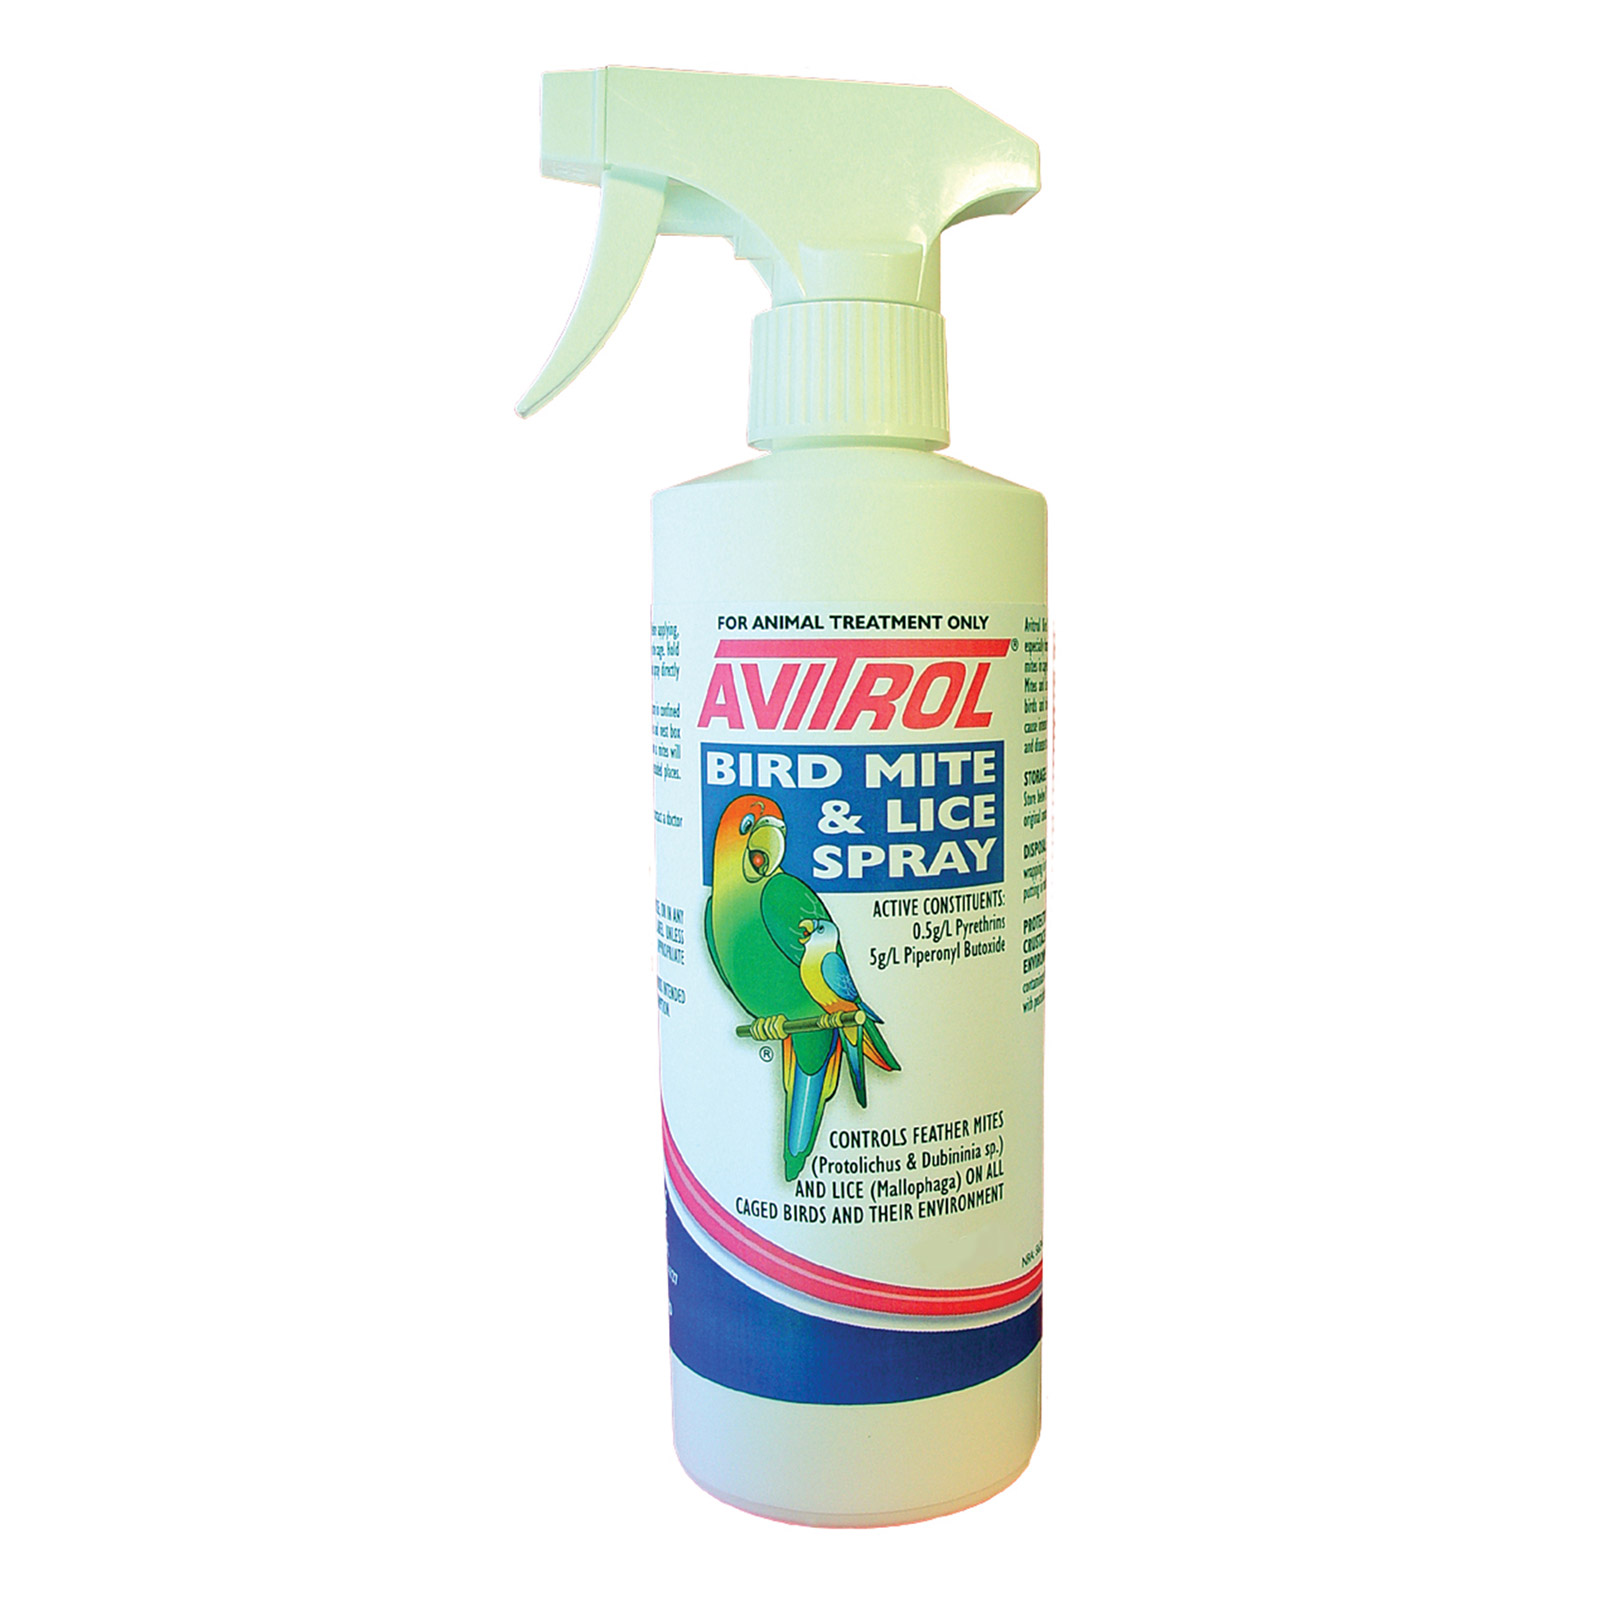 Avitrol Bird Mite & Lice Spray